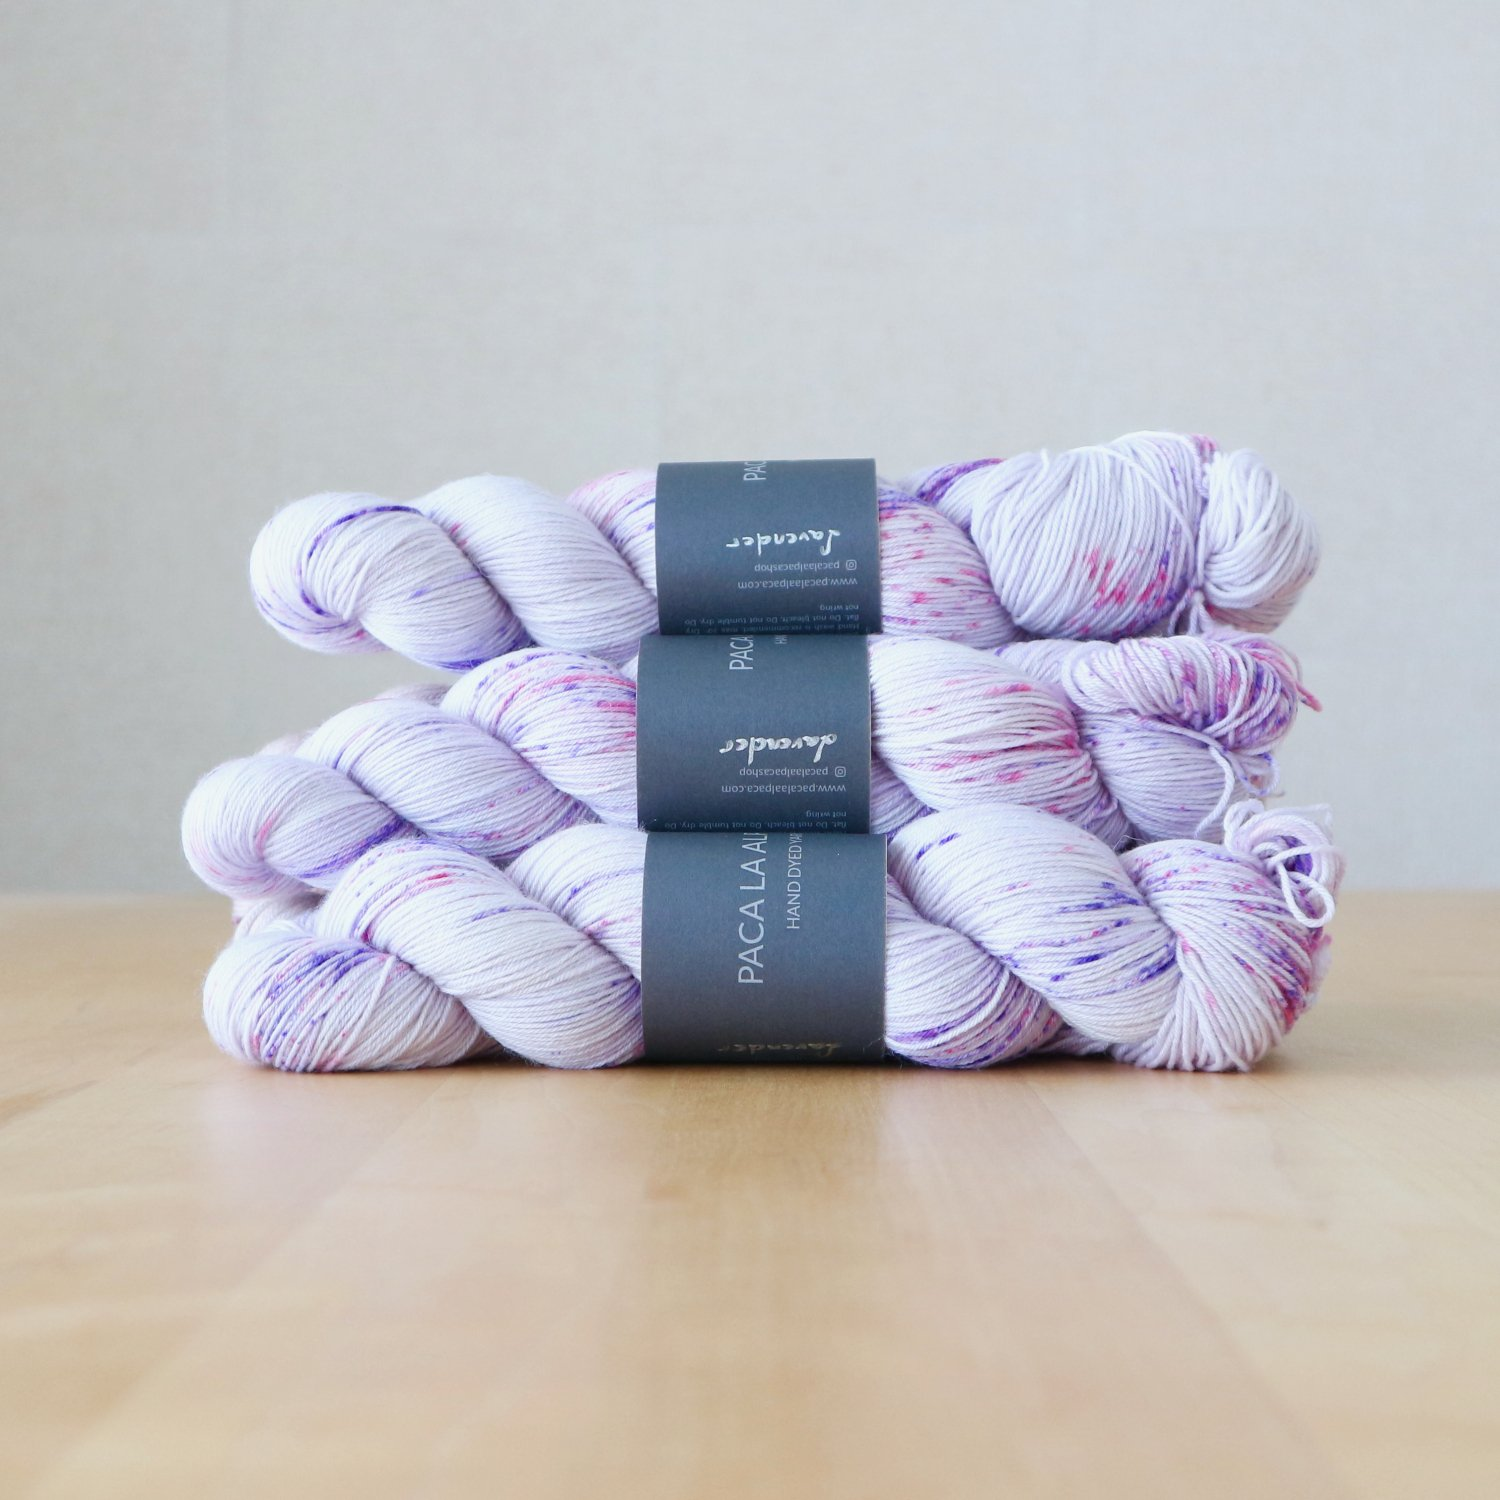 【Paca La Alpaca】<br>Superwash Merino Sock 4Ply<br>Lavender